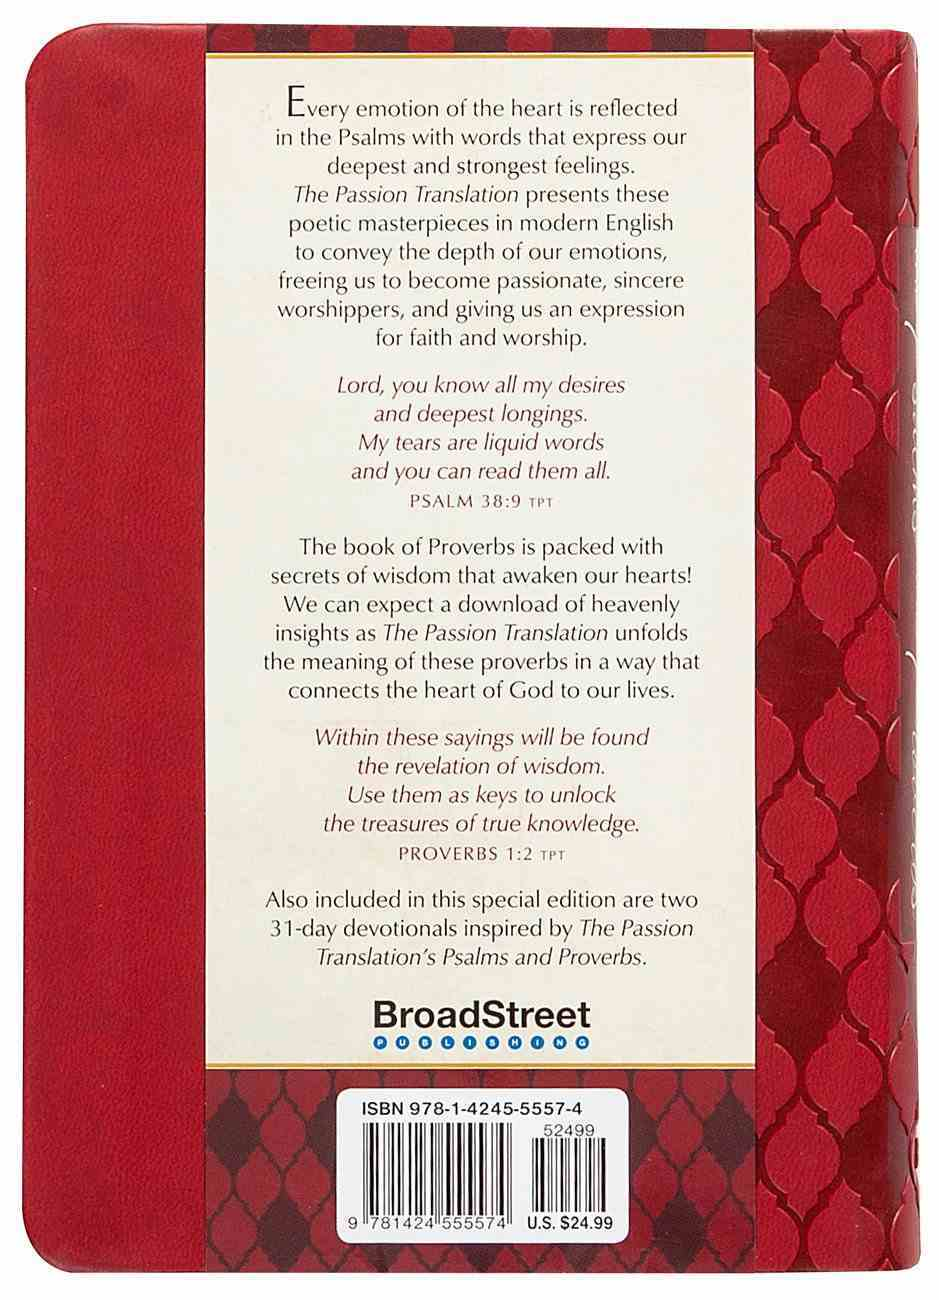 TPT the Psalms & Proverbs (2 In 1 Collection With Devotions) Imitation Leather